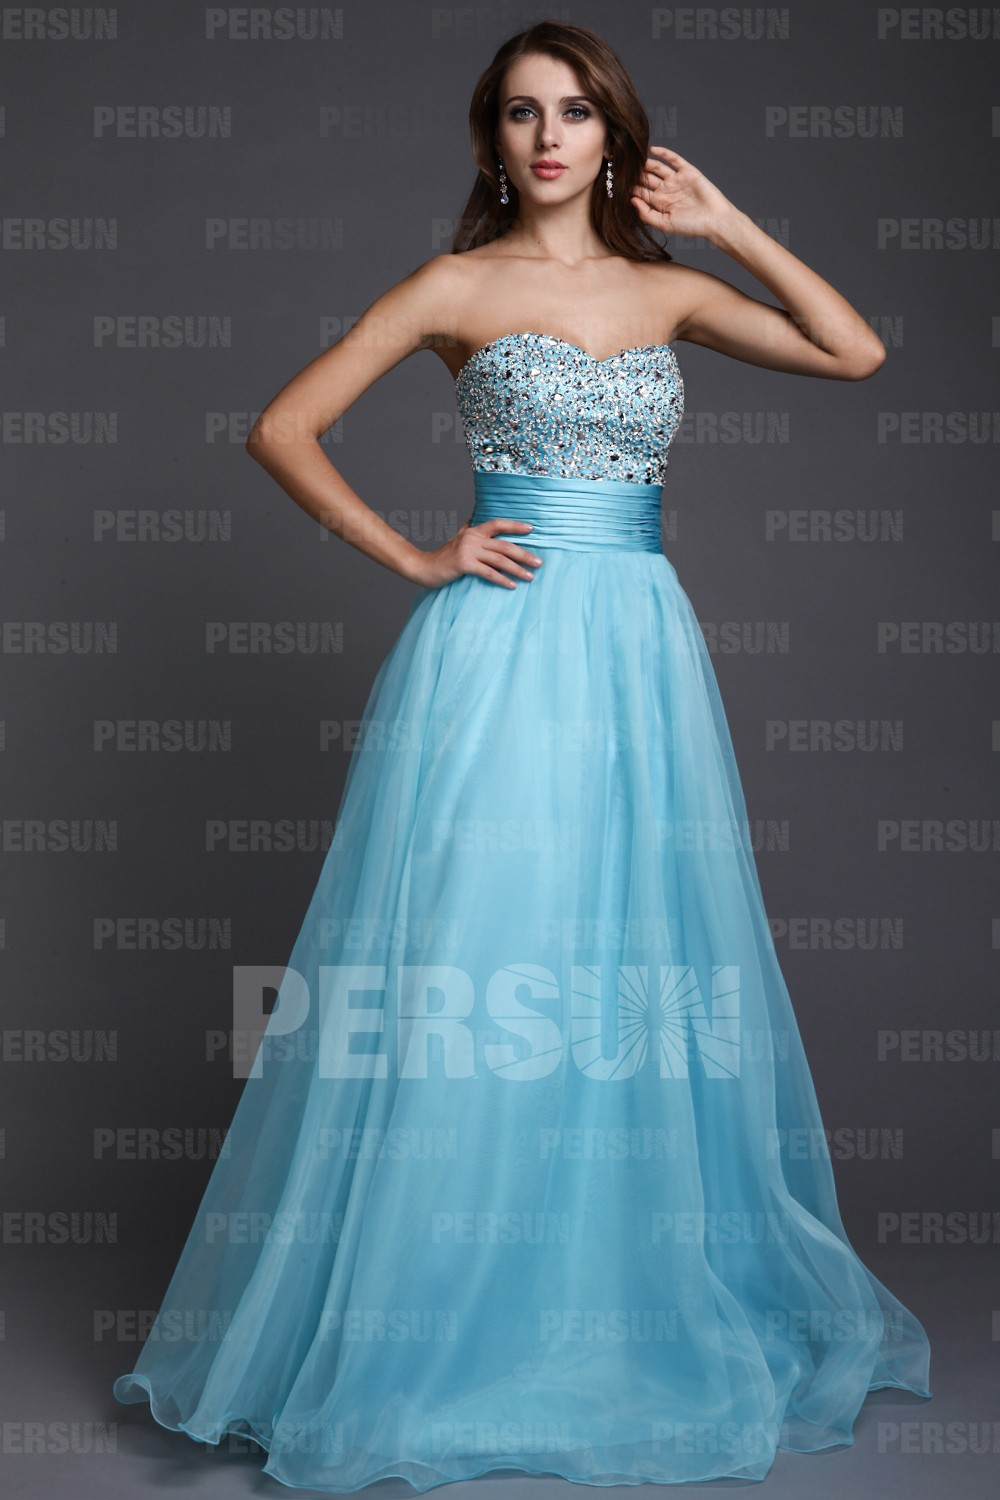 Beaded Sweetheart Tulle Ball Gown Formal Dress